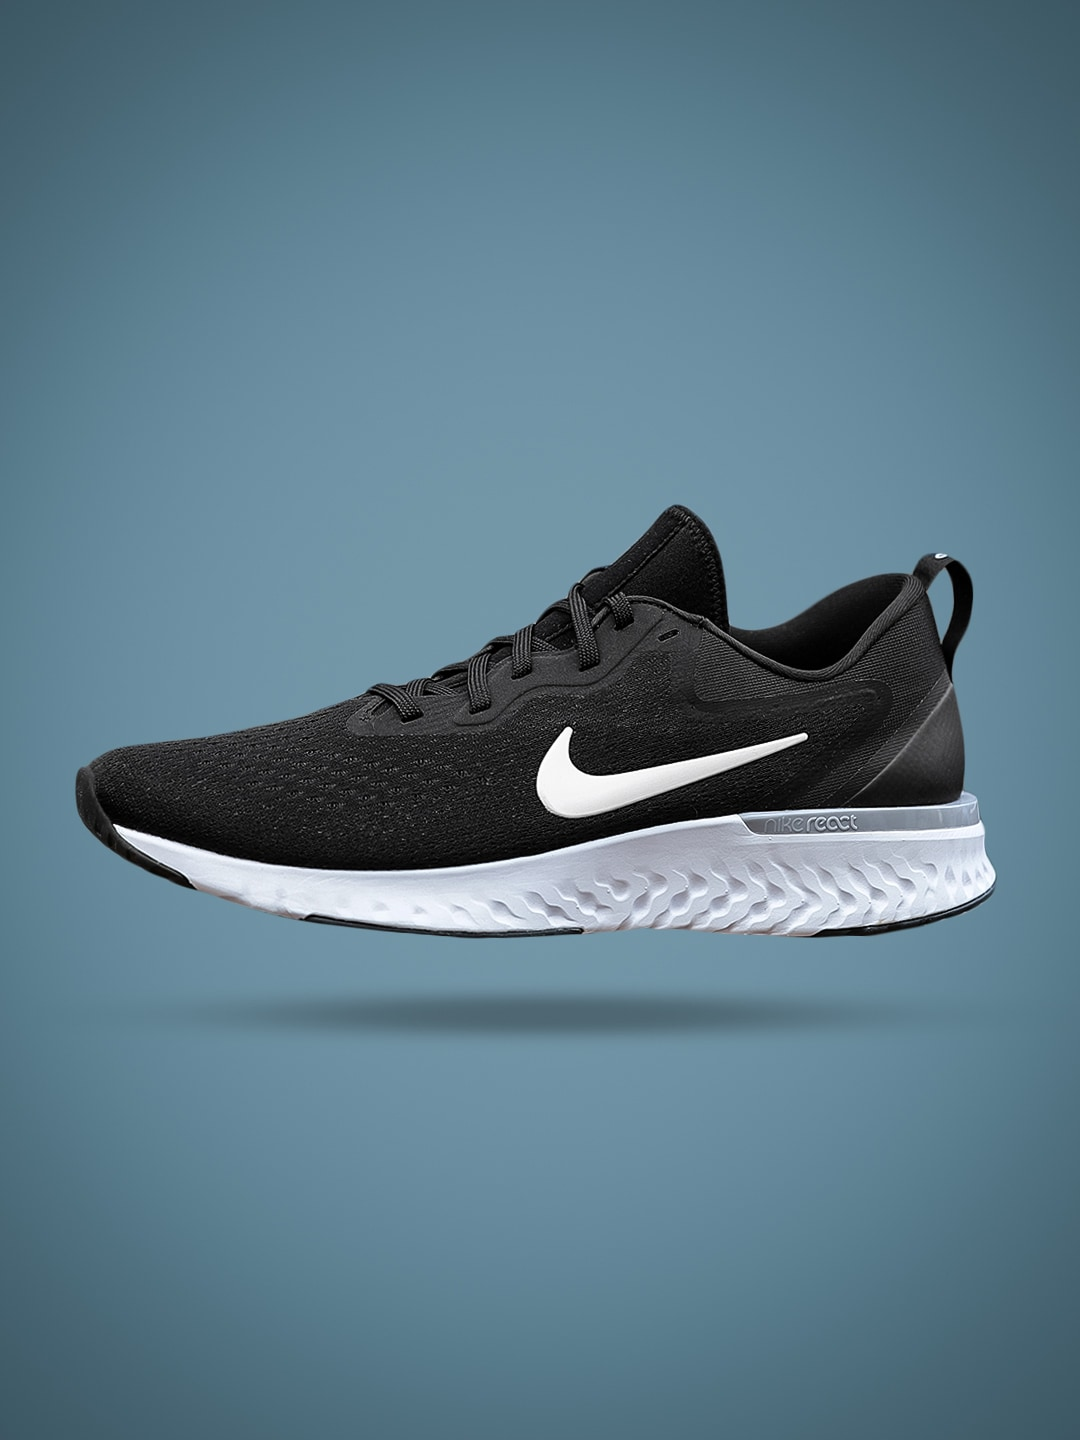 Nike Shoes And - Buy Nike Shoes And online in India d9e723e91adc2